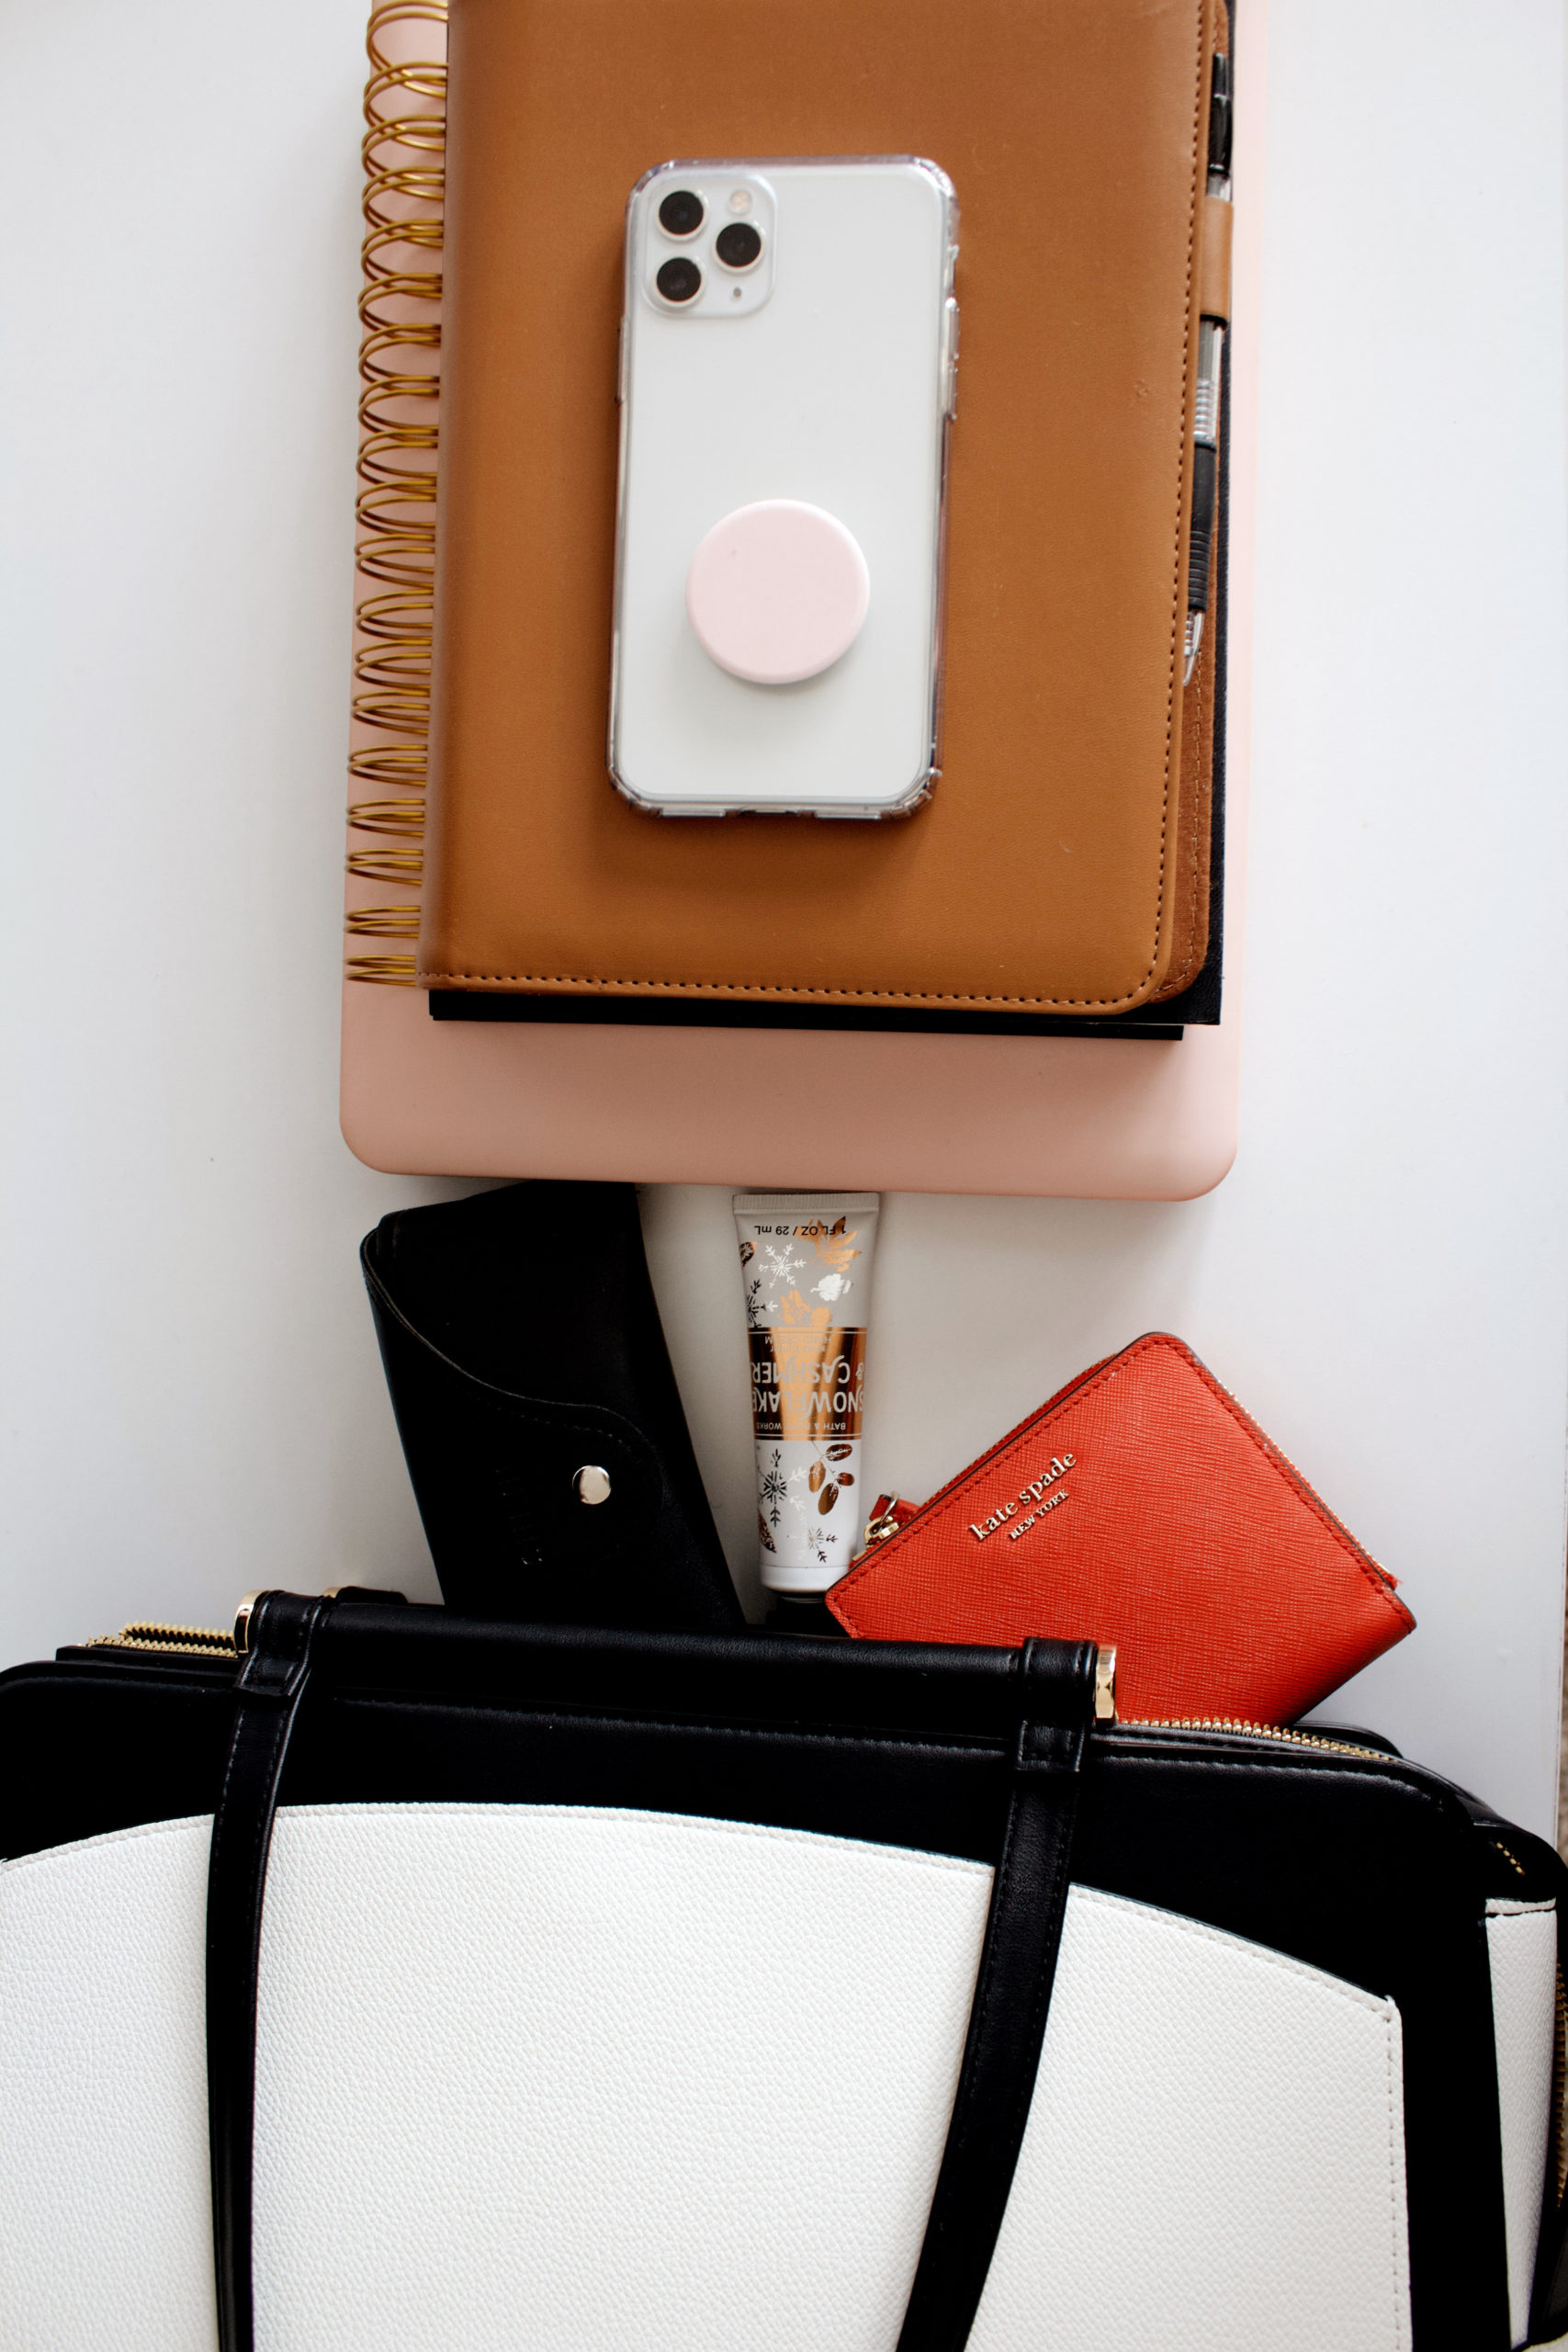 items spilling out of work bag including iPhone 11 Pro with pink pop socket.